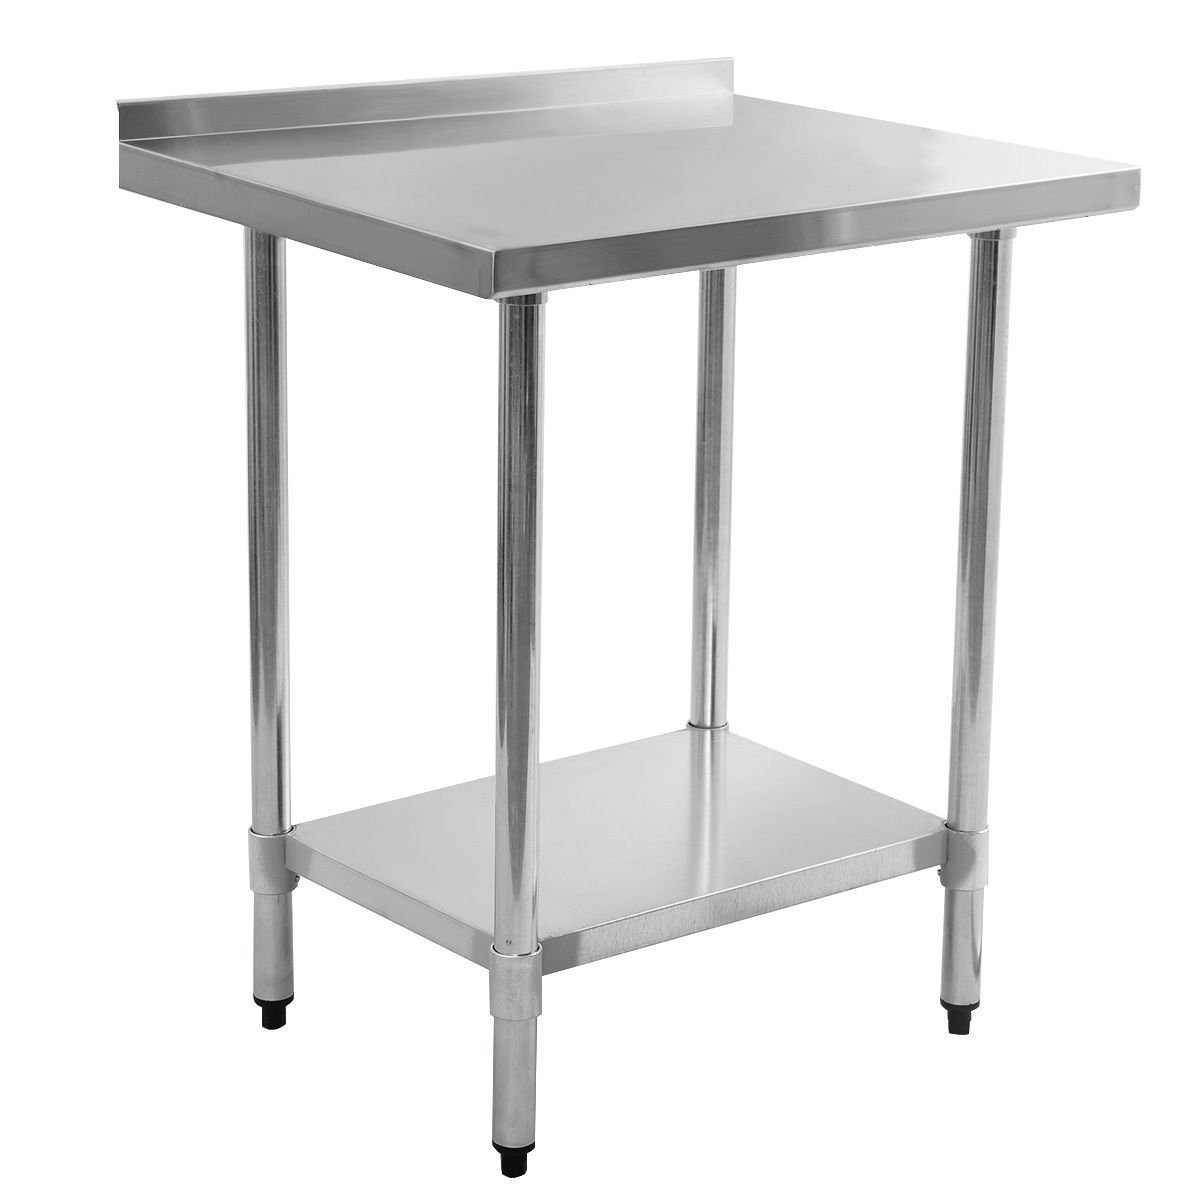 Stainless Steel Kitchen Work Table: Giantex Stainless Steel Work Prep Table With Backsplash